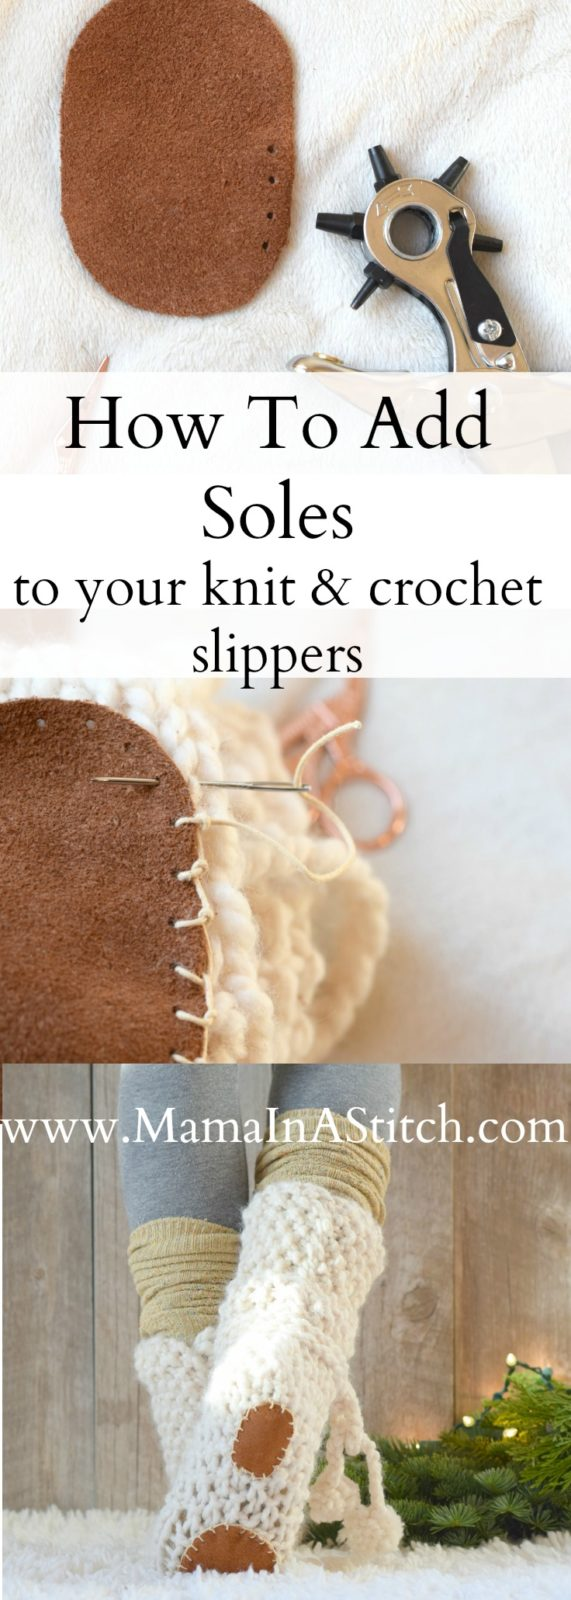 Adding New Stitches Knitting : How To Add Soles to Knit or Crochet Slippers   Mama In A Stitch